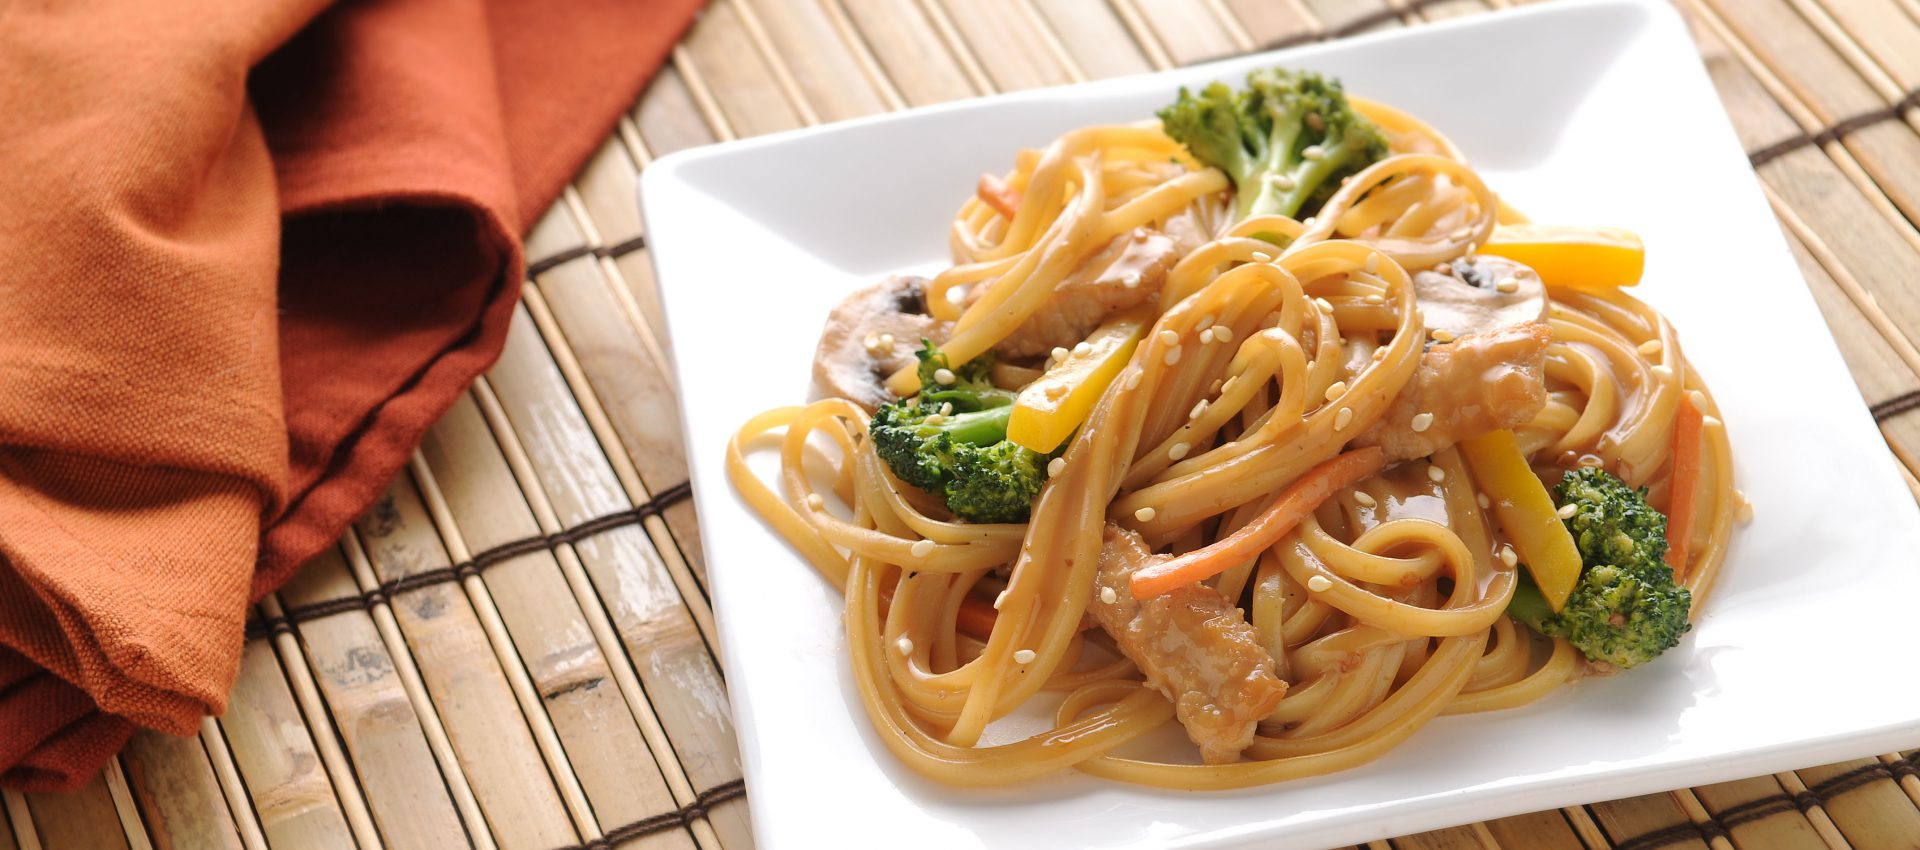 Linguine-with-Asian-Style-Pork-1920x850 Linguine with Asian-Style Pork